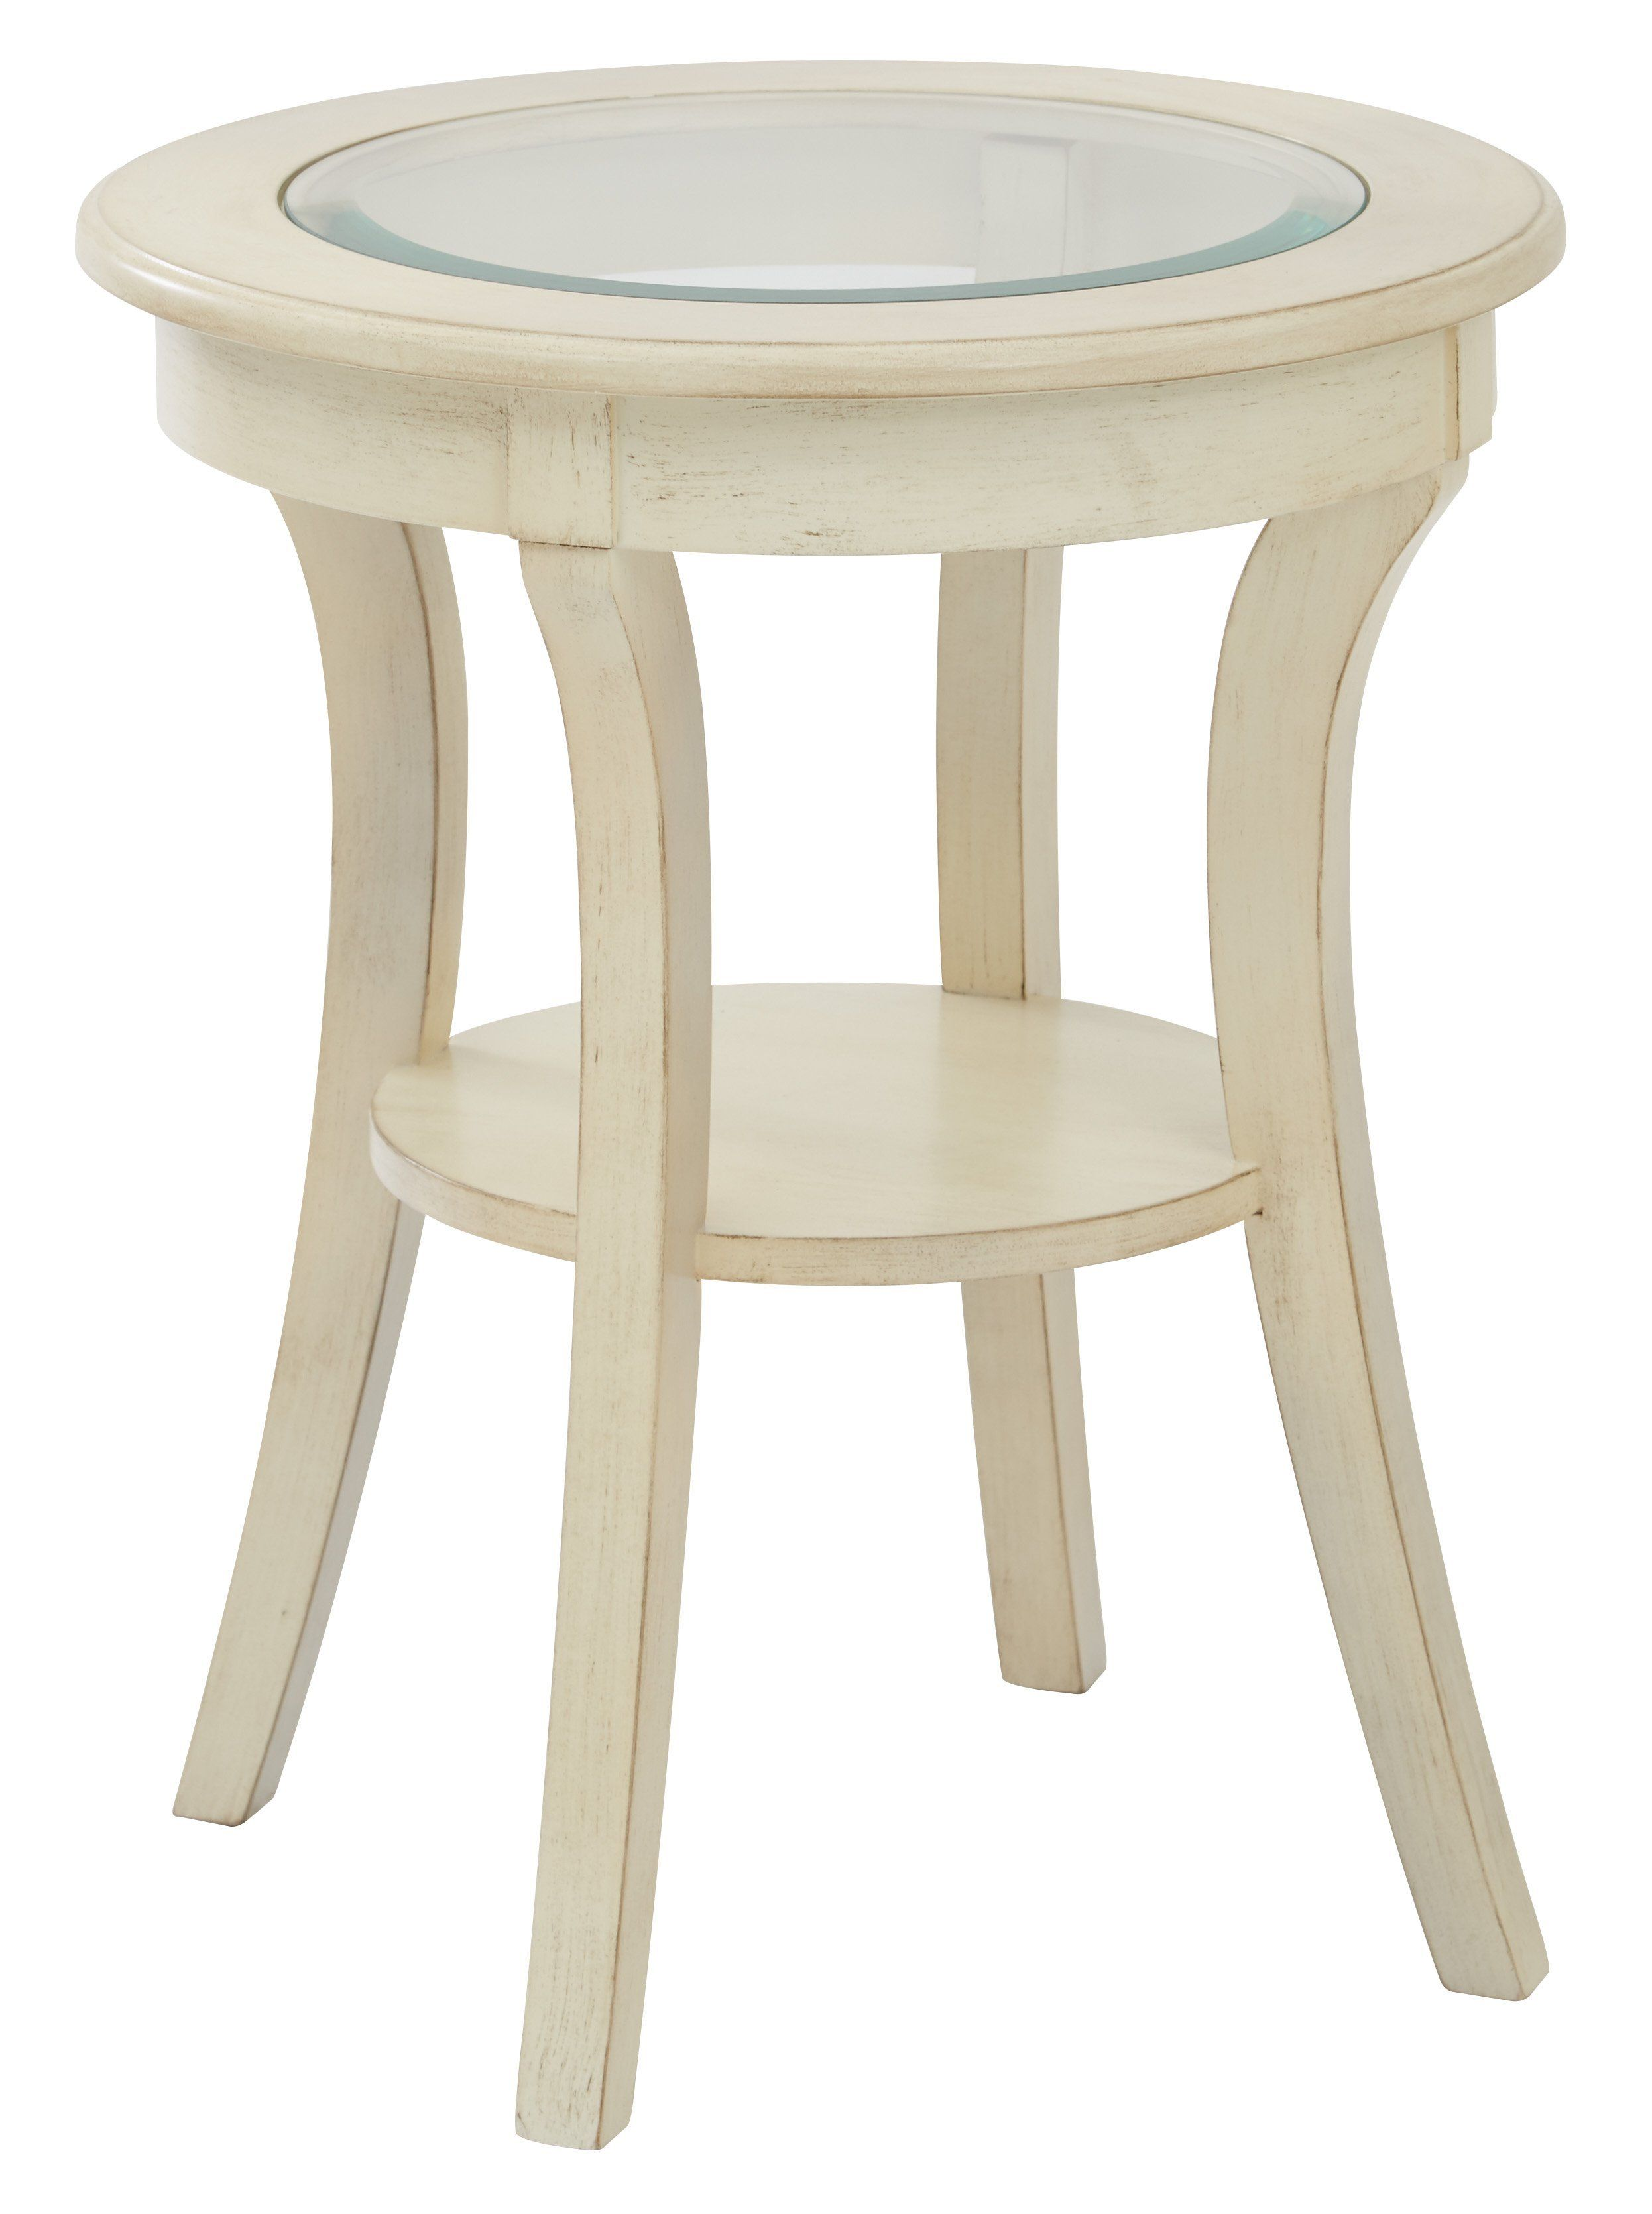 office star antique white harper round accent table products traditional lamps unfinished wood side pier wall decor beautiful drop leaf and chairs home furniture living room set